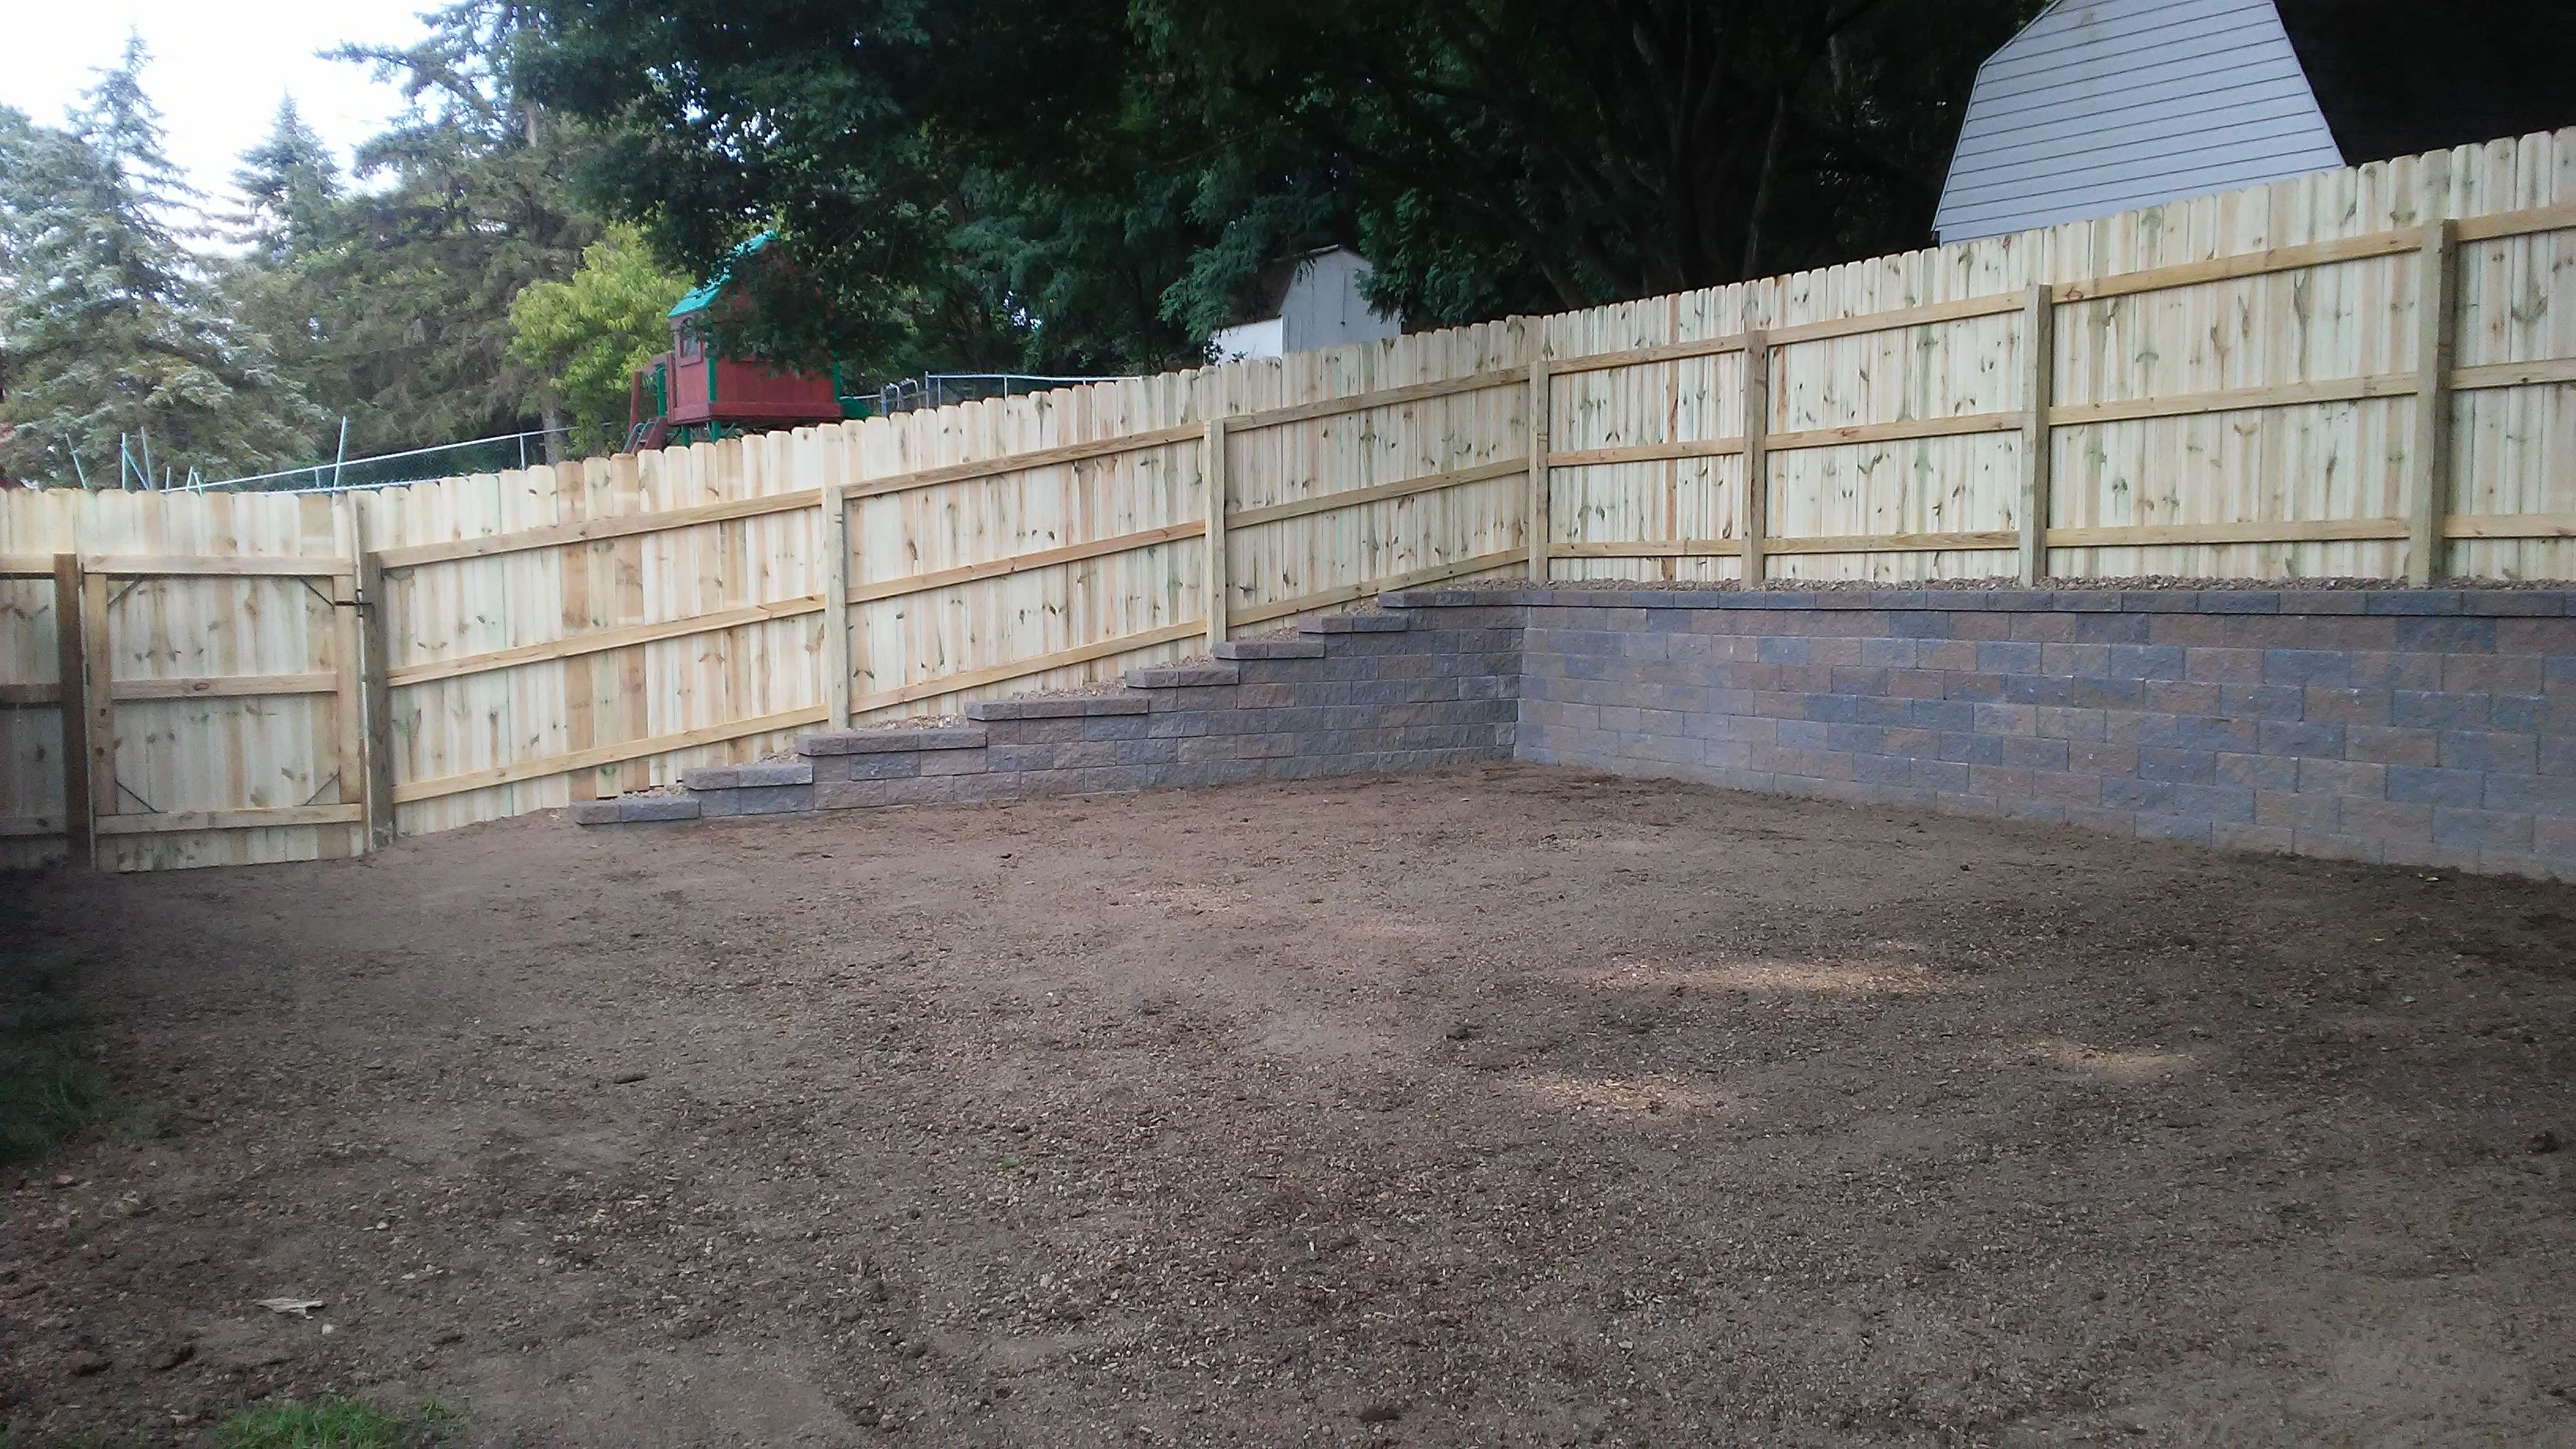 Yard Leveled Out Versa Lok Retaining Wall And Privacy Fence 2 Bamboo Fence Backyard Fences Sloped Backyard